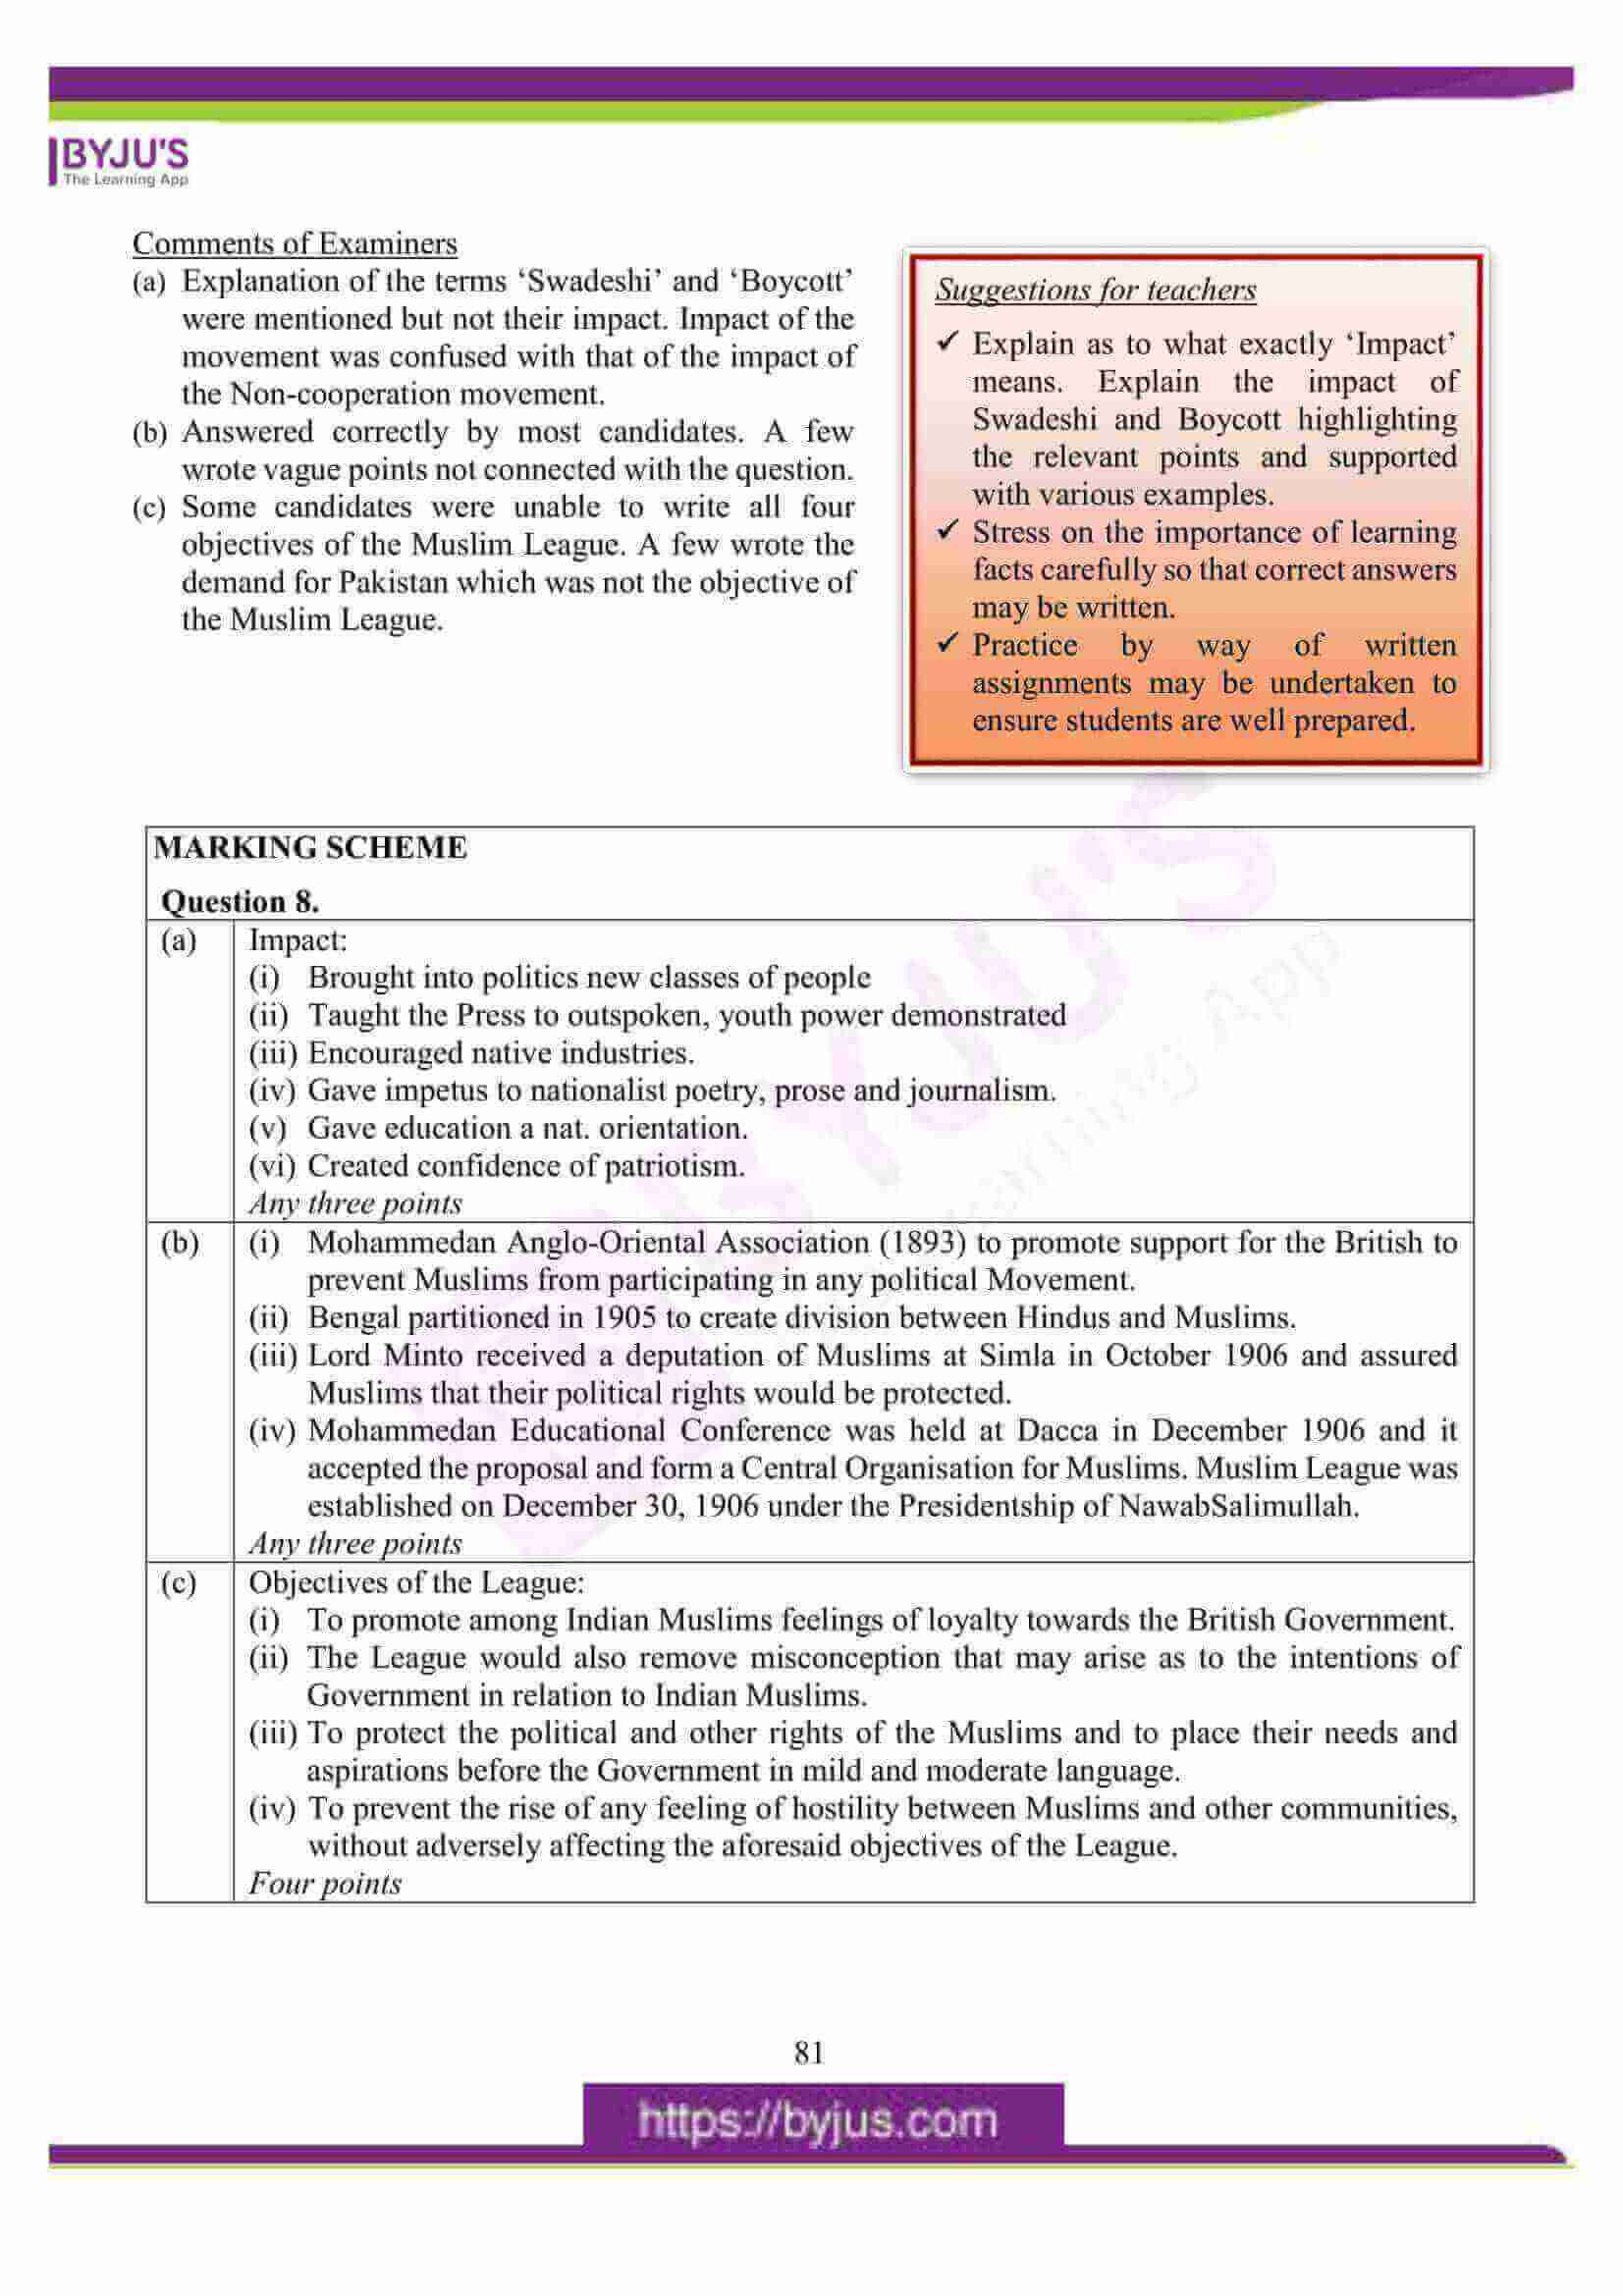 icse class 10 his and civics question paper solution 2016 14